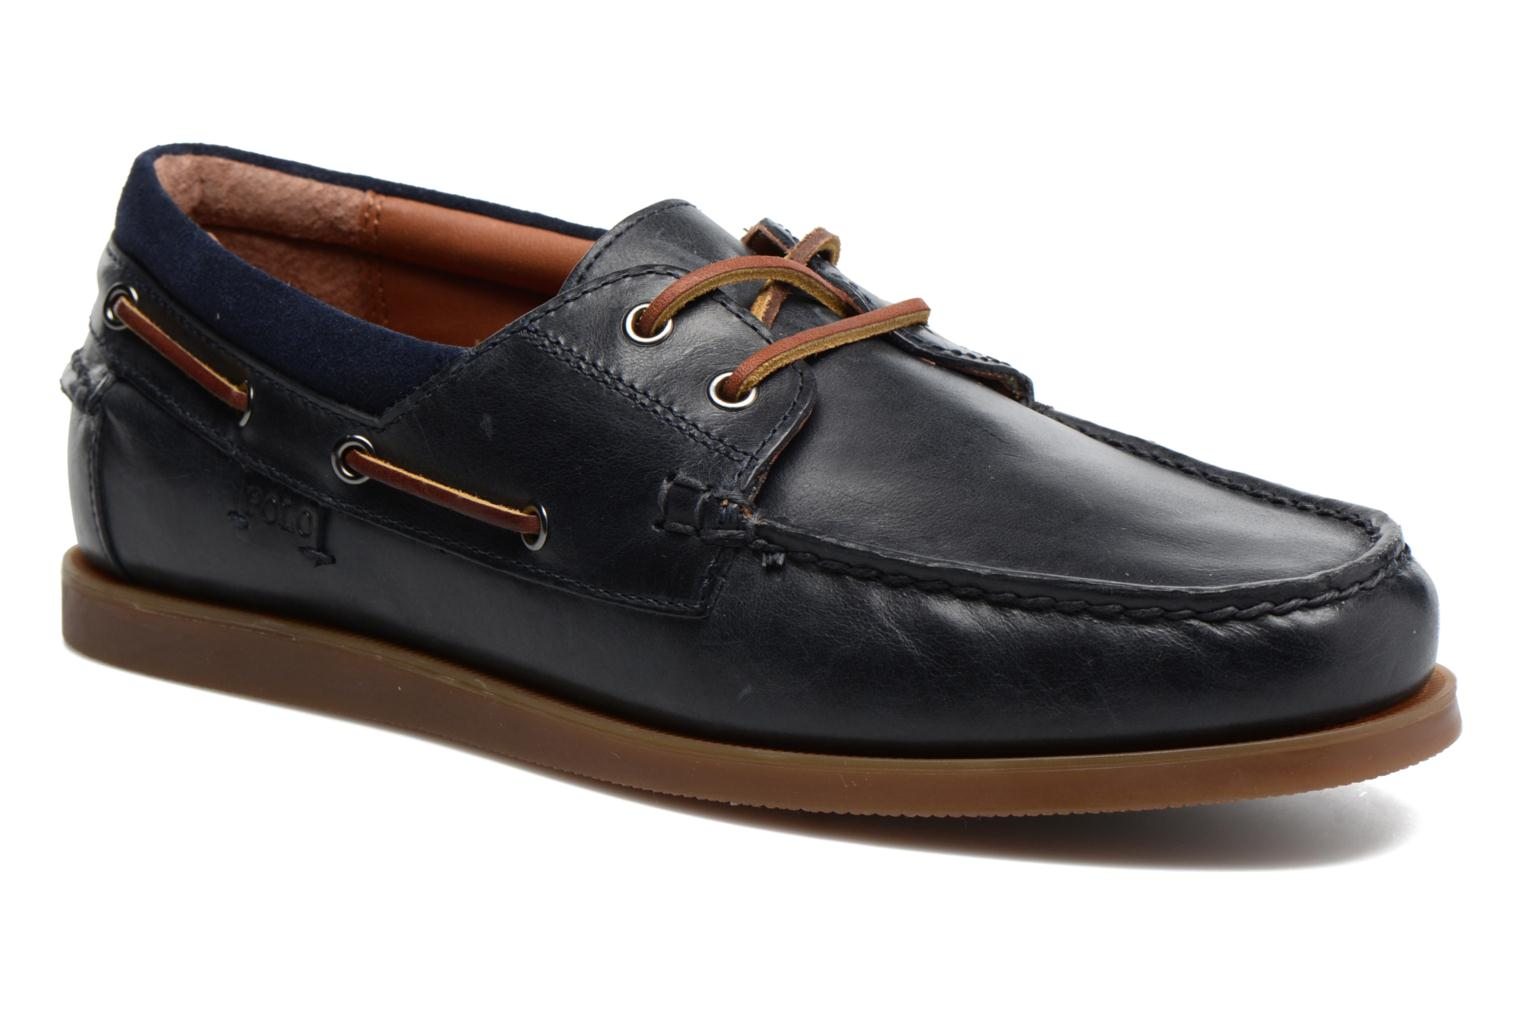 Dayne-Shoe-Casual Newport navy